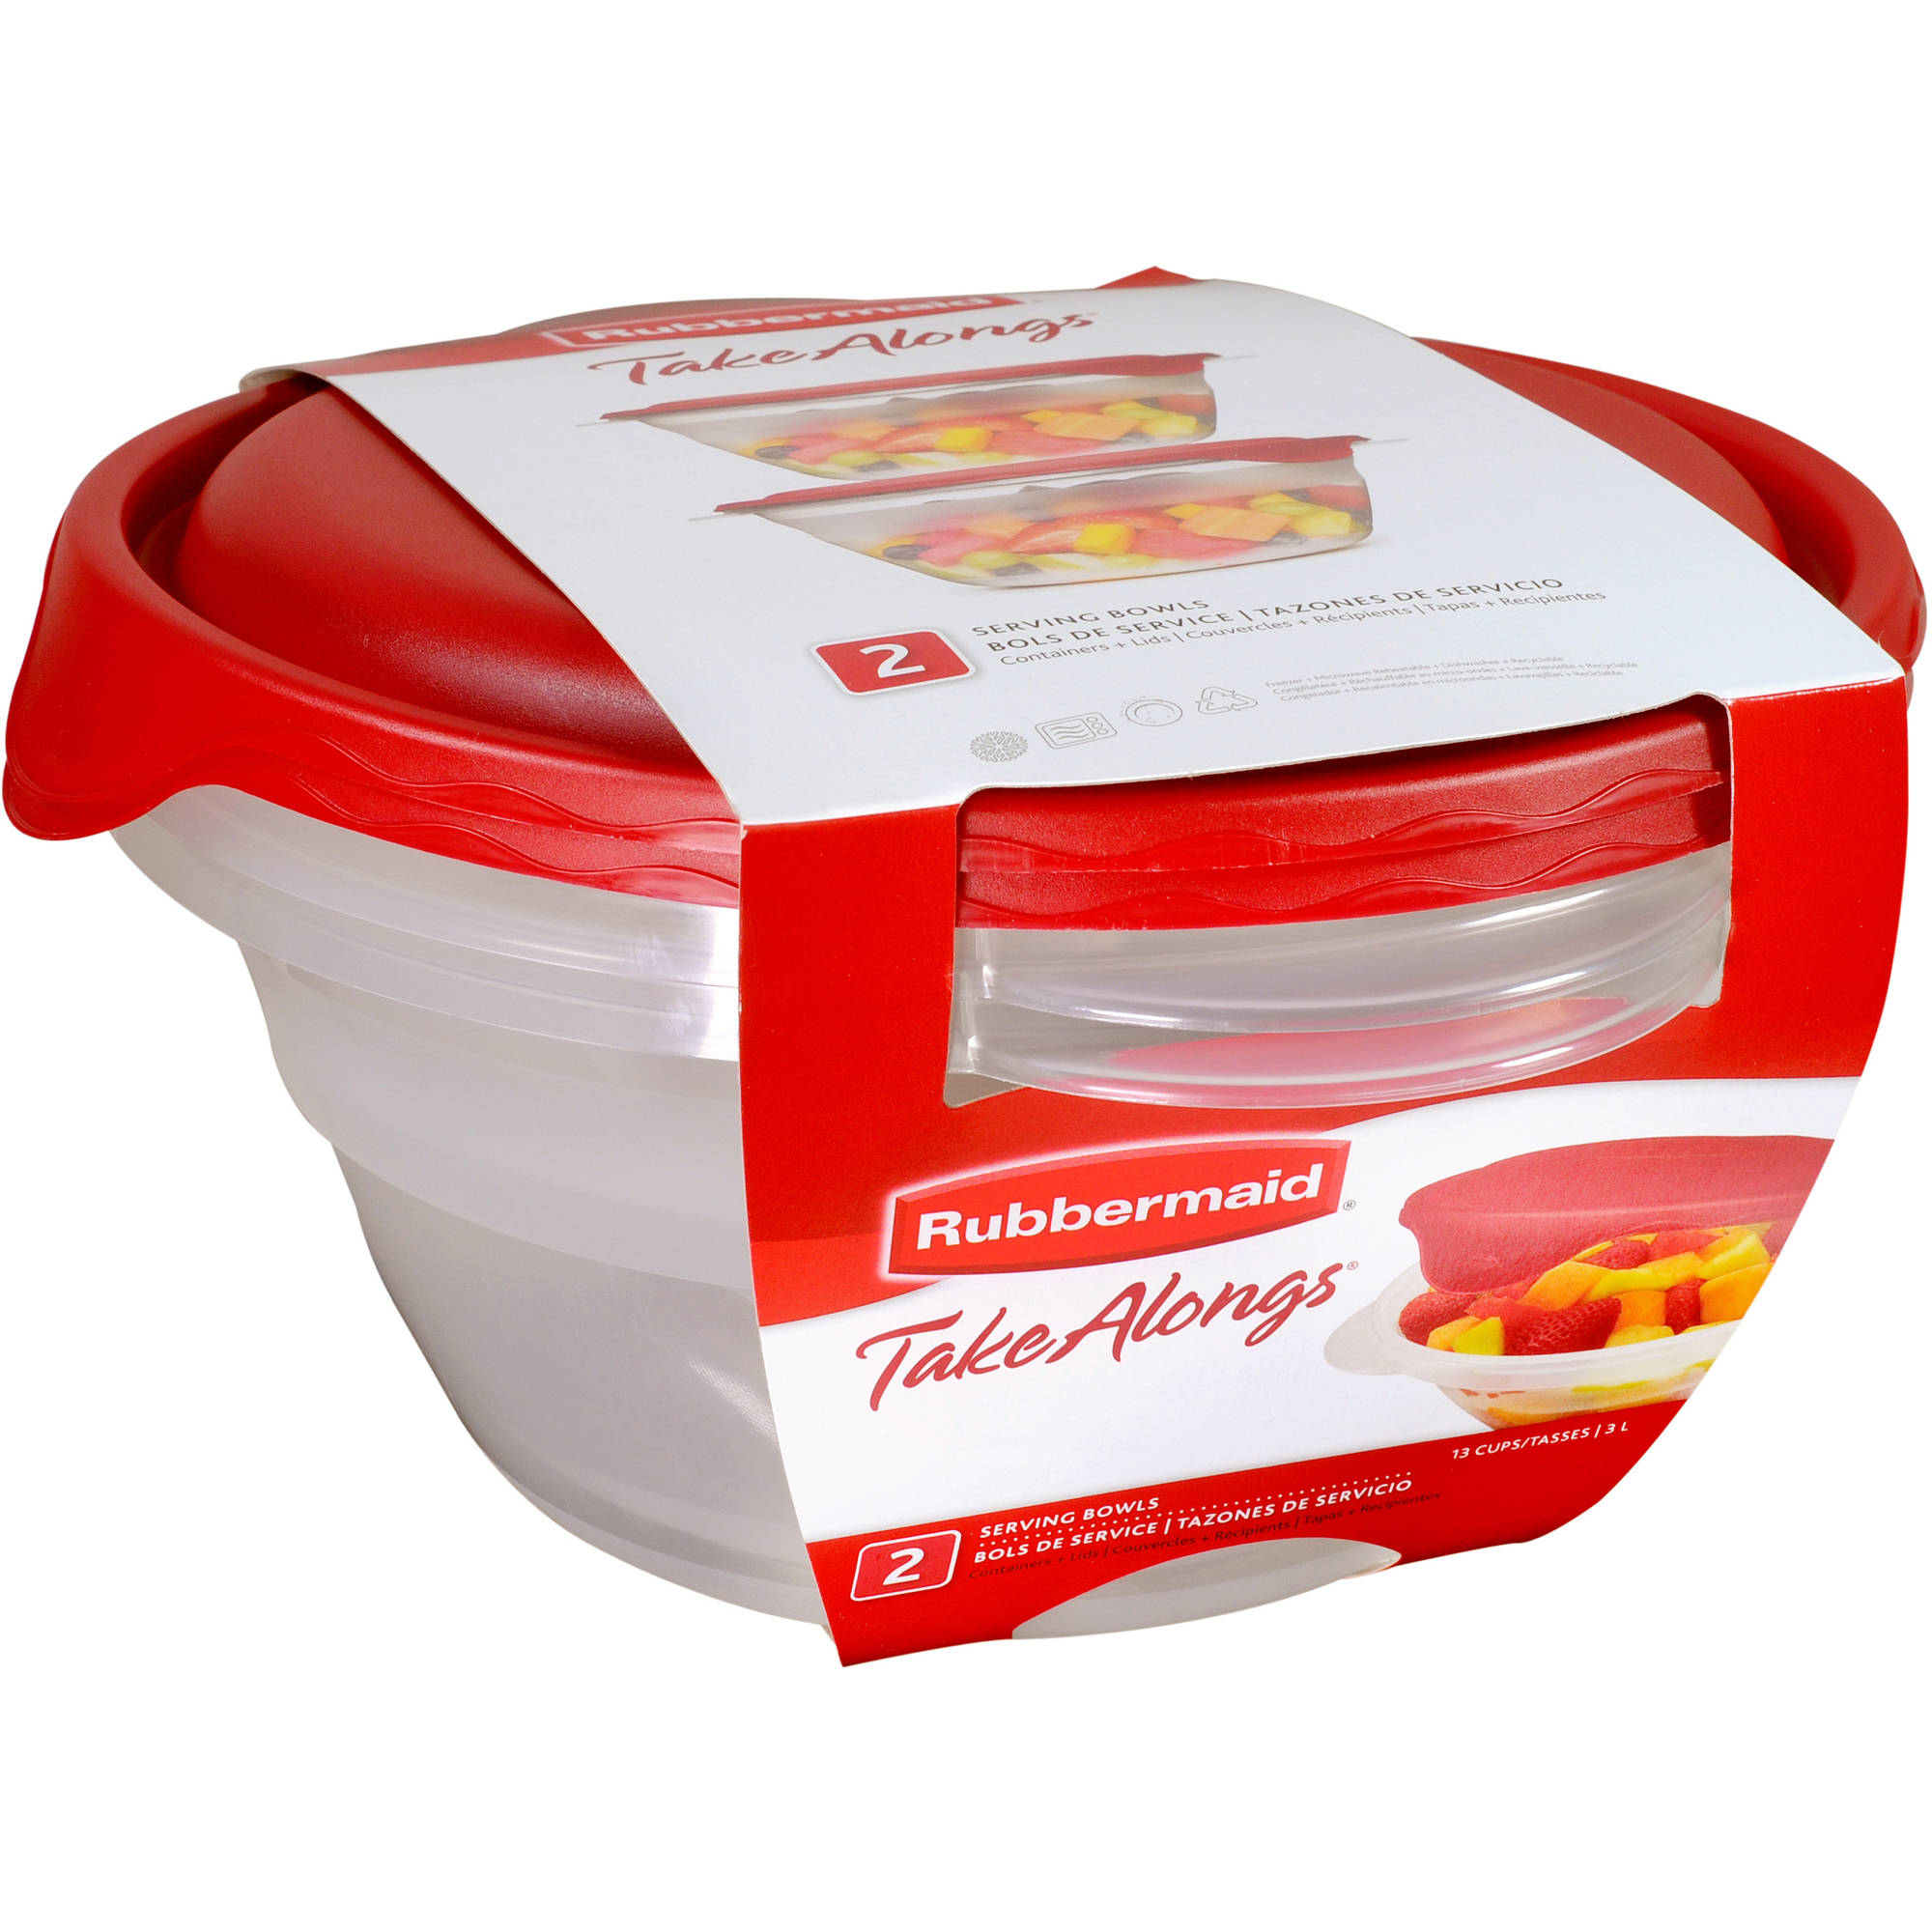 Rubbermaid TakeAlongs Serving Bowls, 2 count